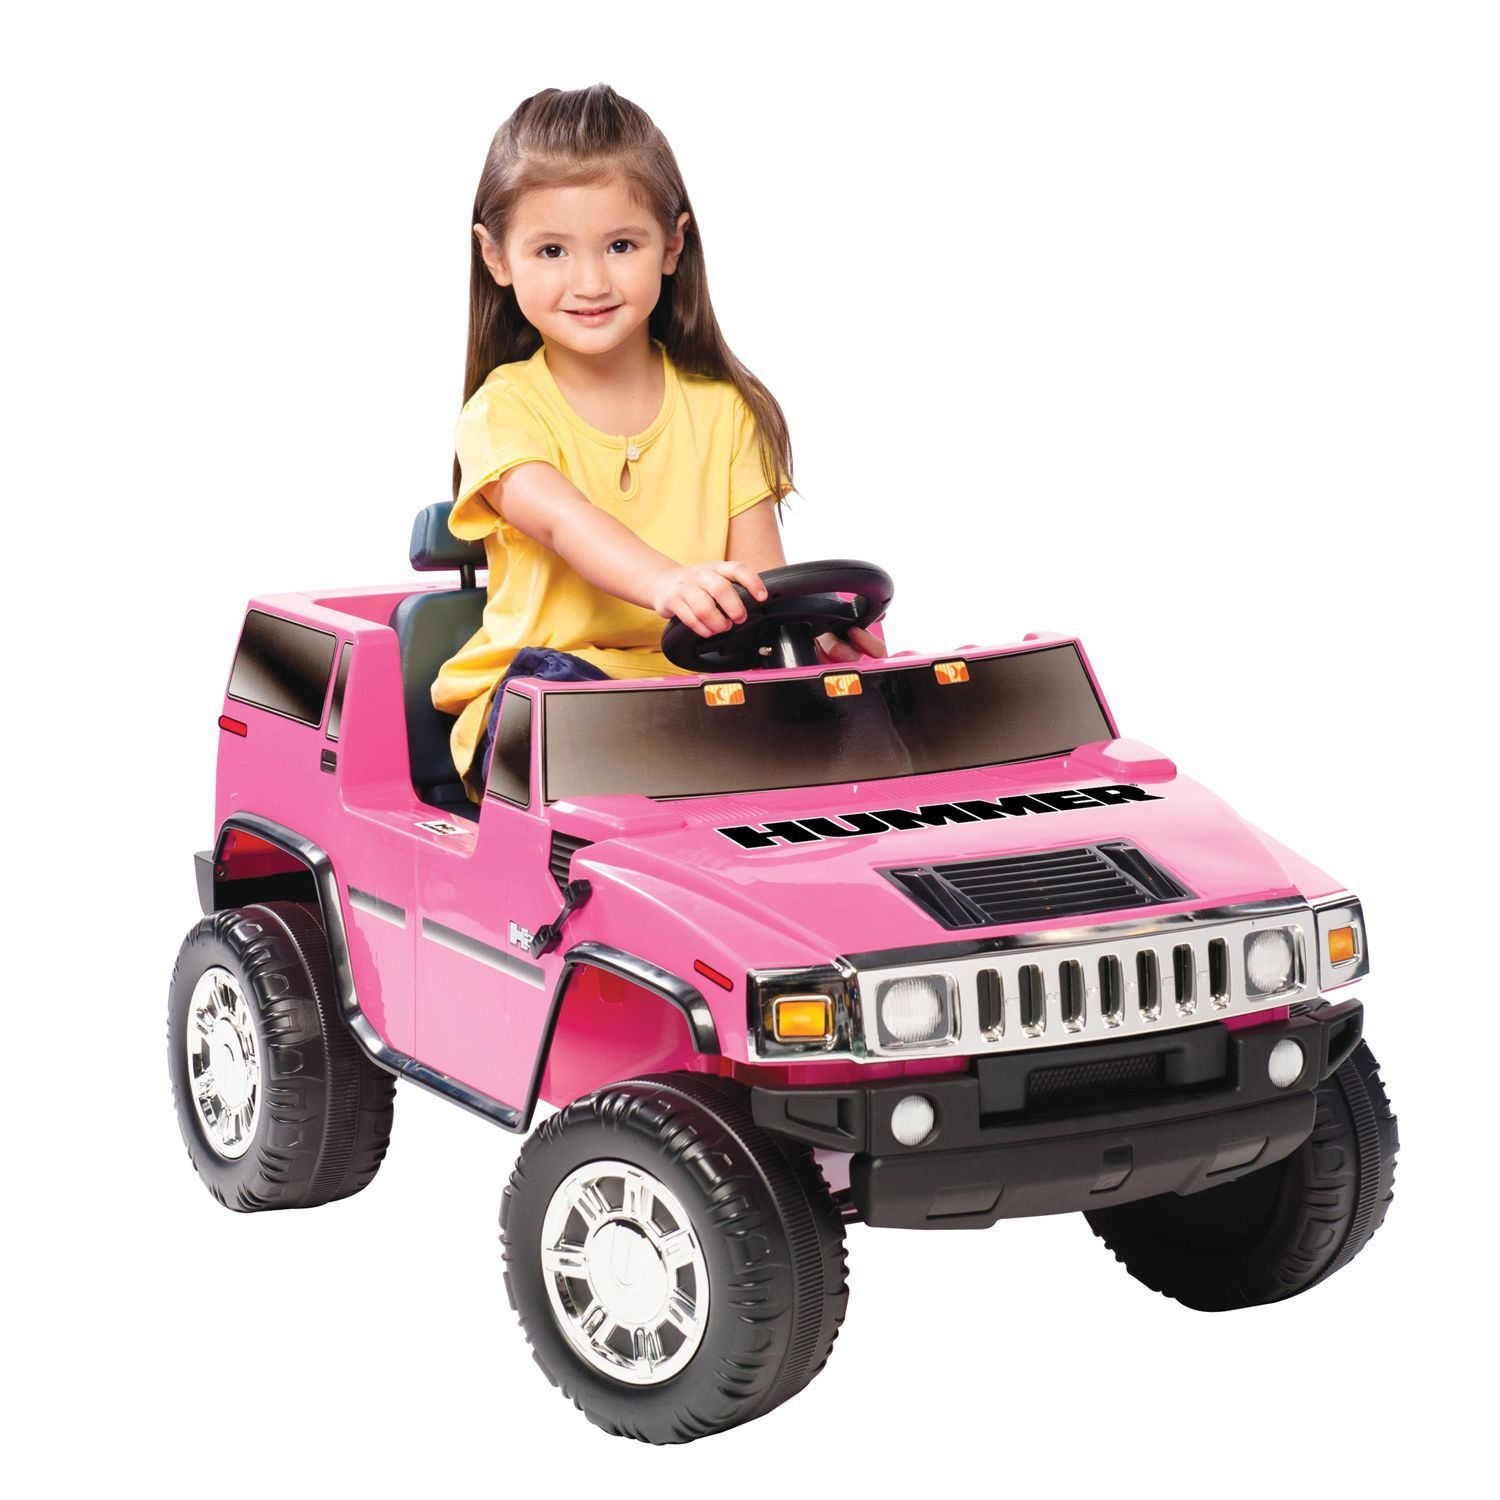 Child toys car  Hummer H Rideon  Products  Pinterest  Hummer h Hummer and